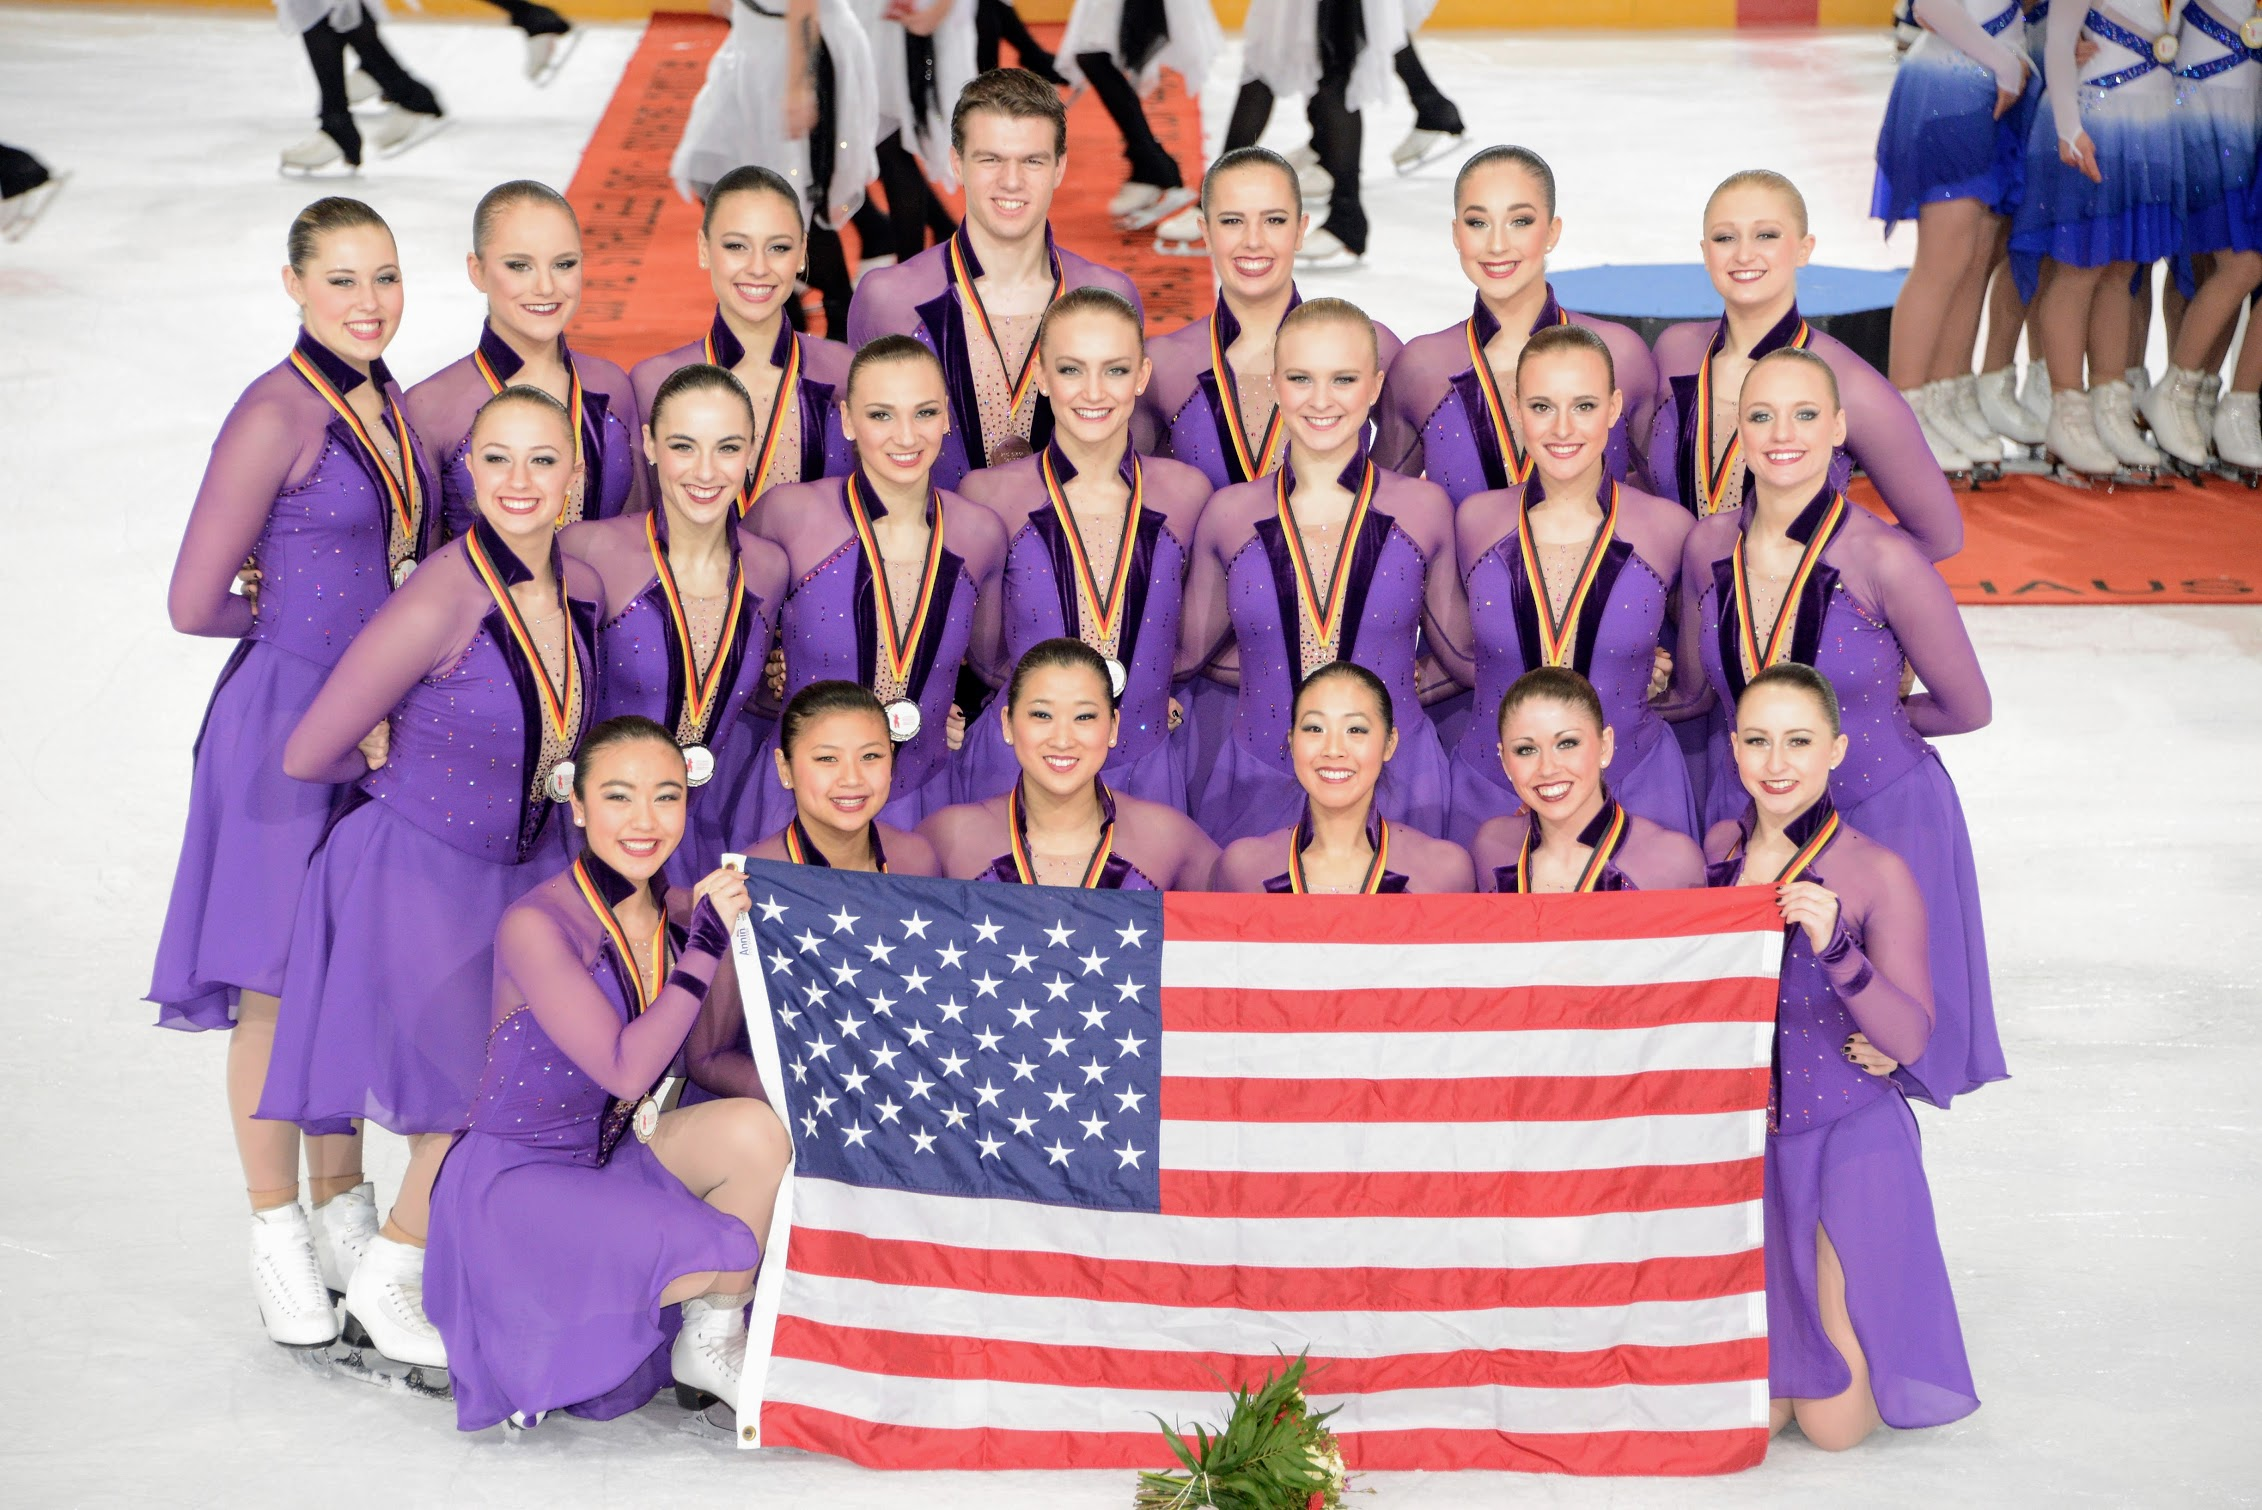 Haydenettes 2017 National GOLD medalists and 2016 World BRONZE medalists